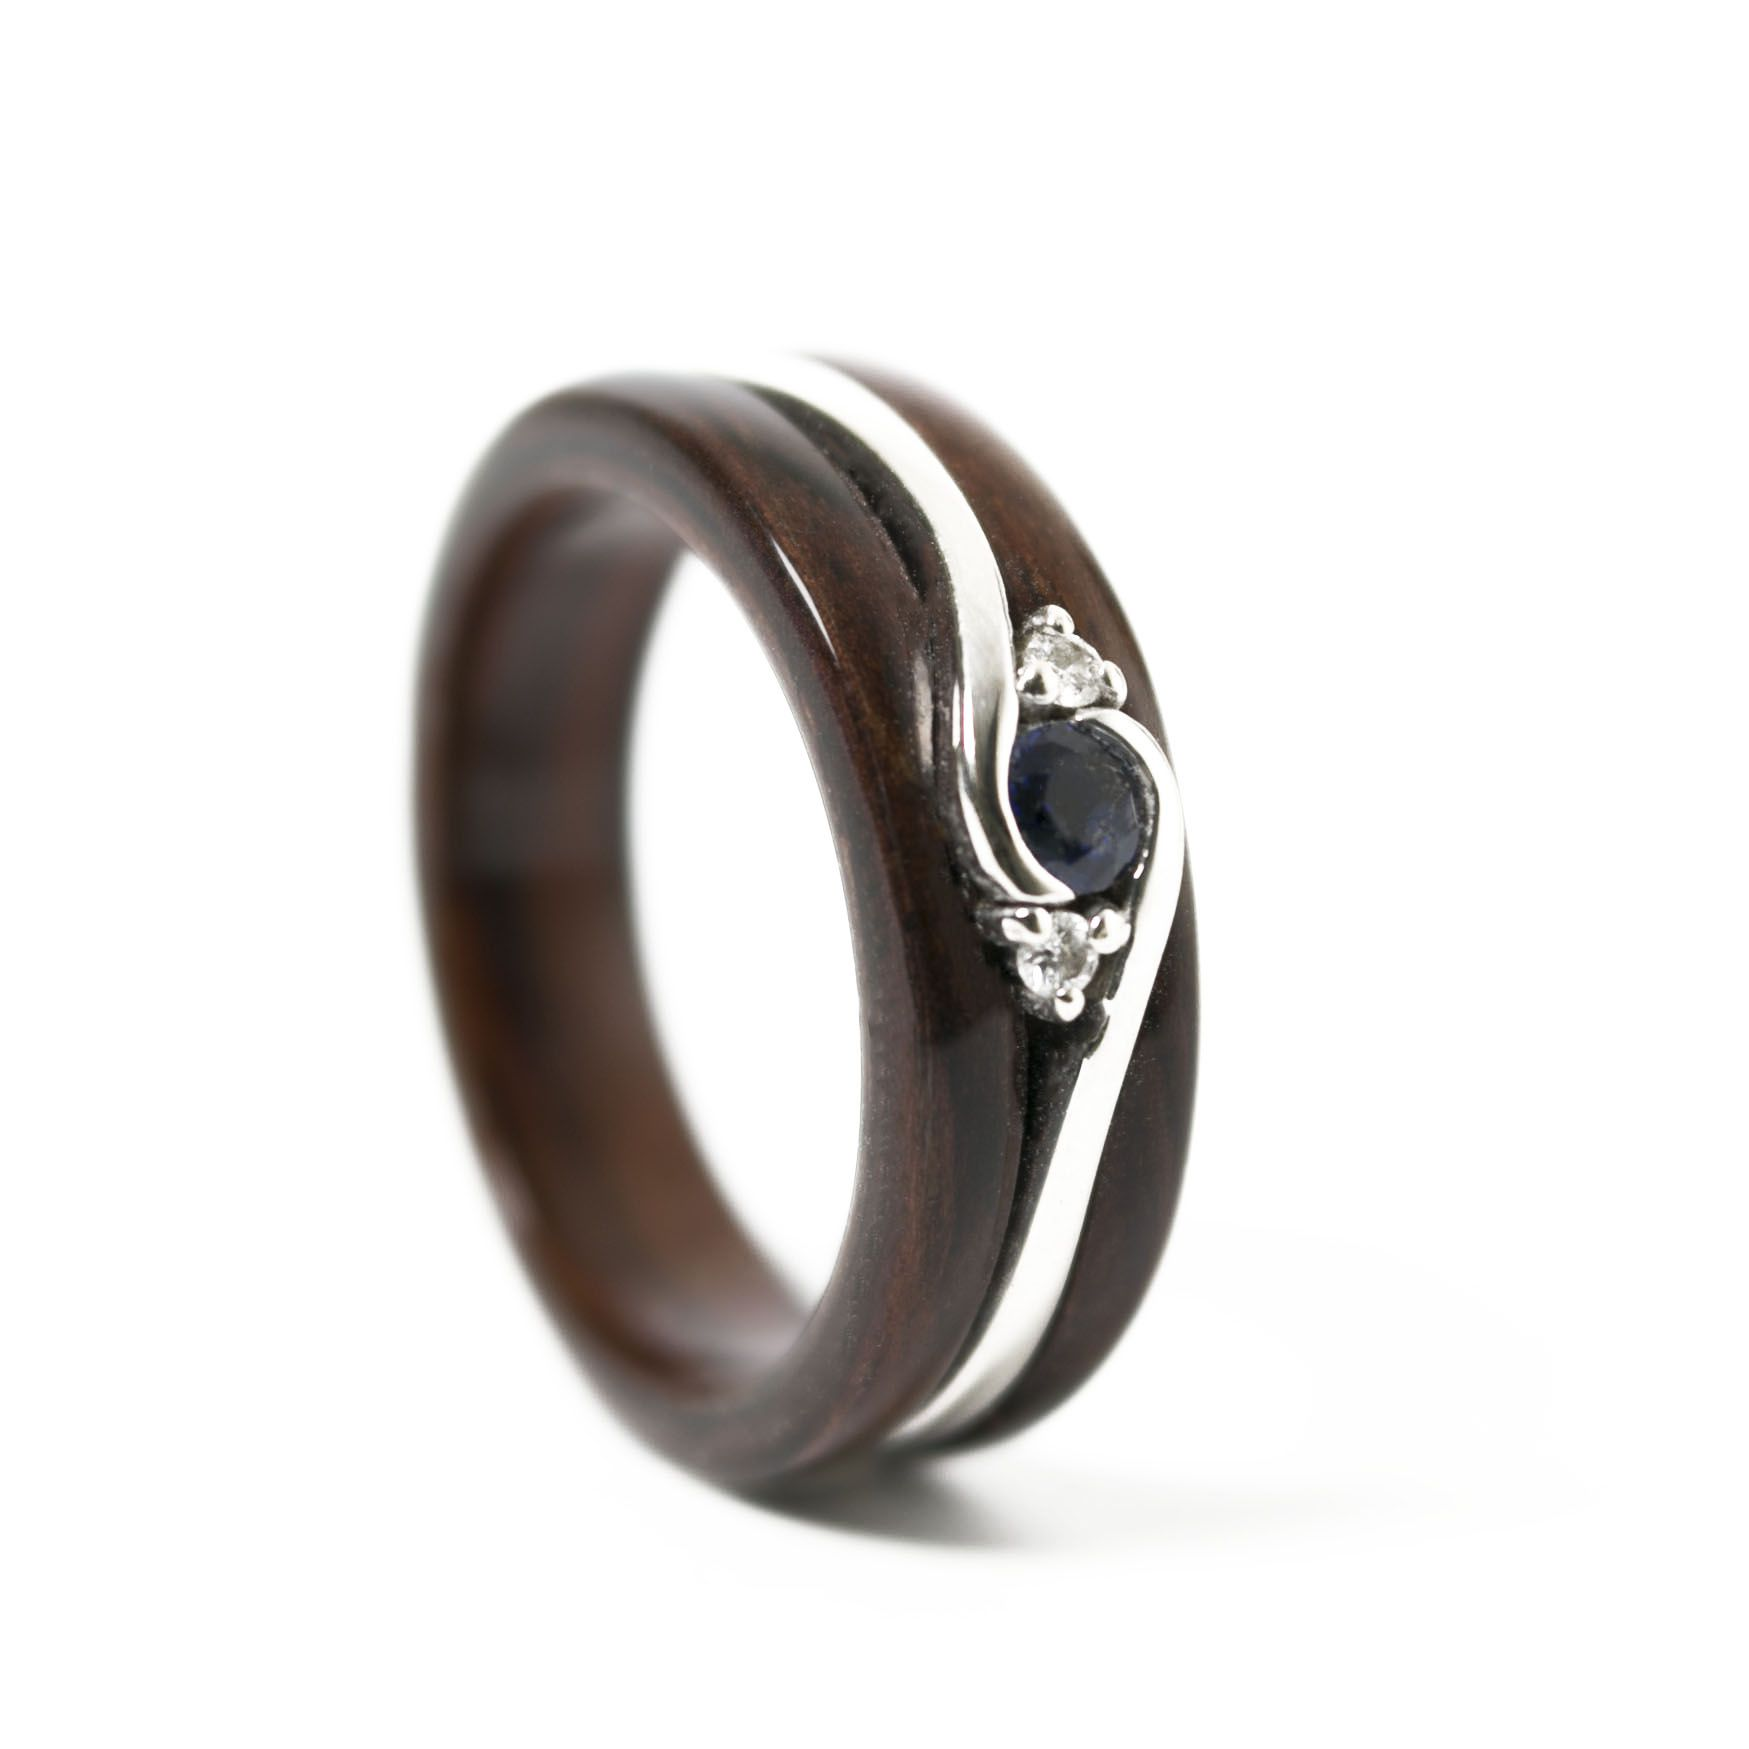 Unity Engagement Ring Vintage Love Wood And Metal Wedding Ring Woodengagementring Wooden Rings Engagement Cool Wedding Rings Womens Engagement Rings